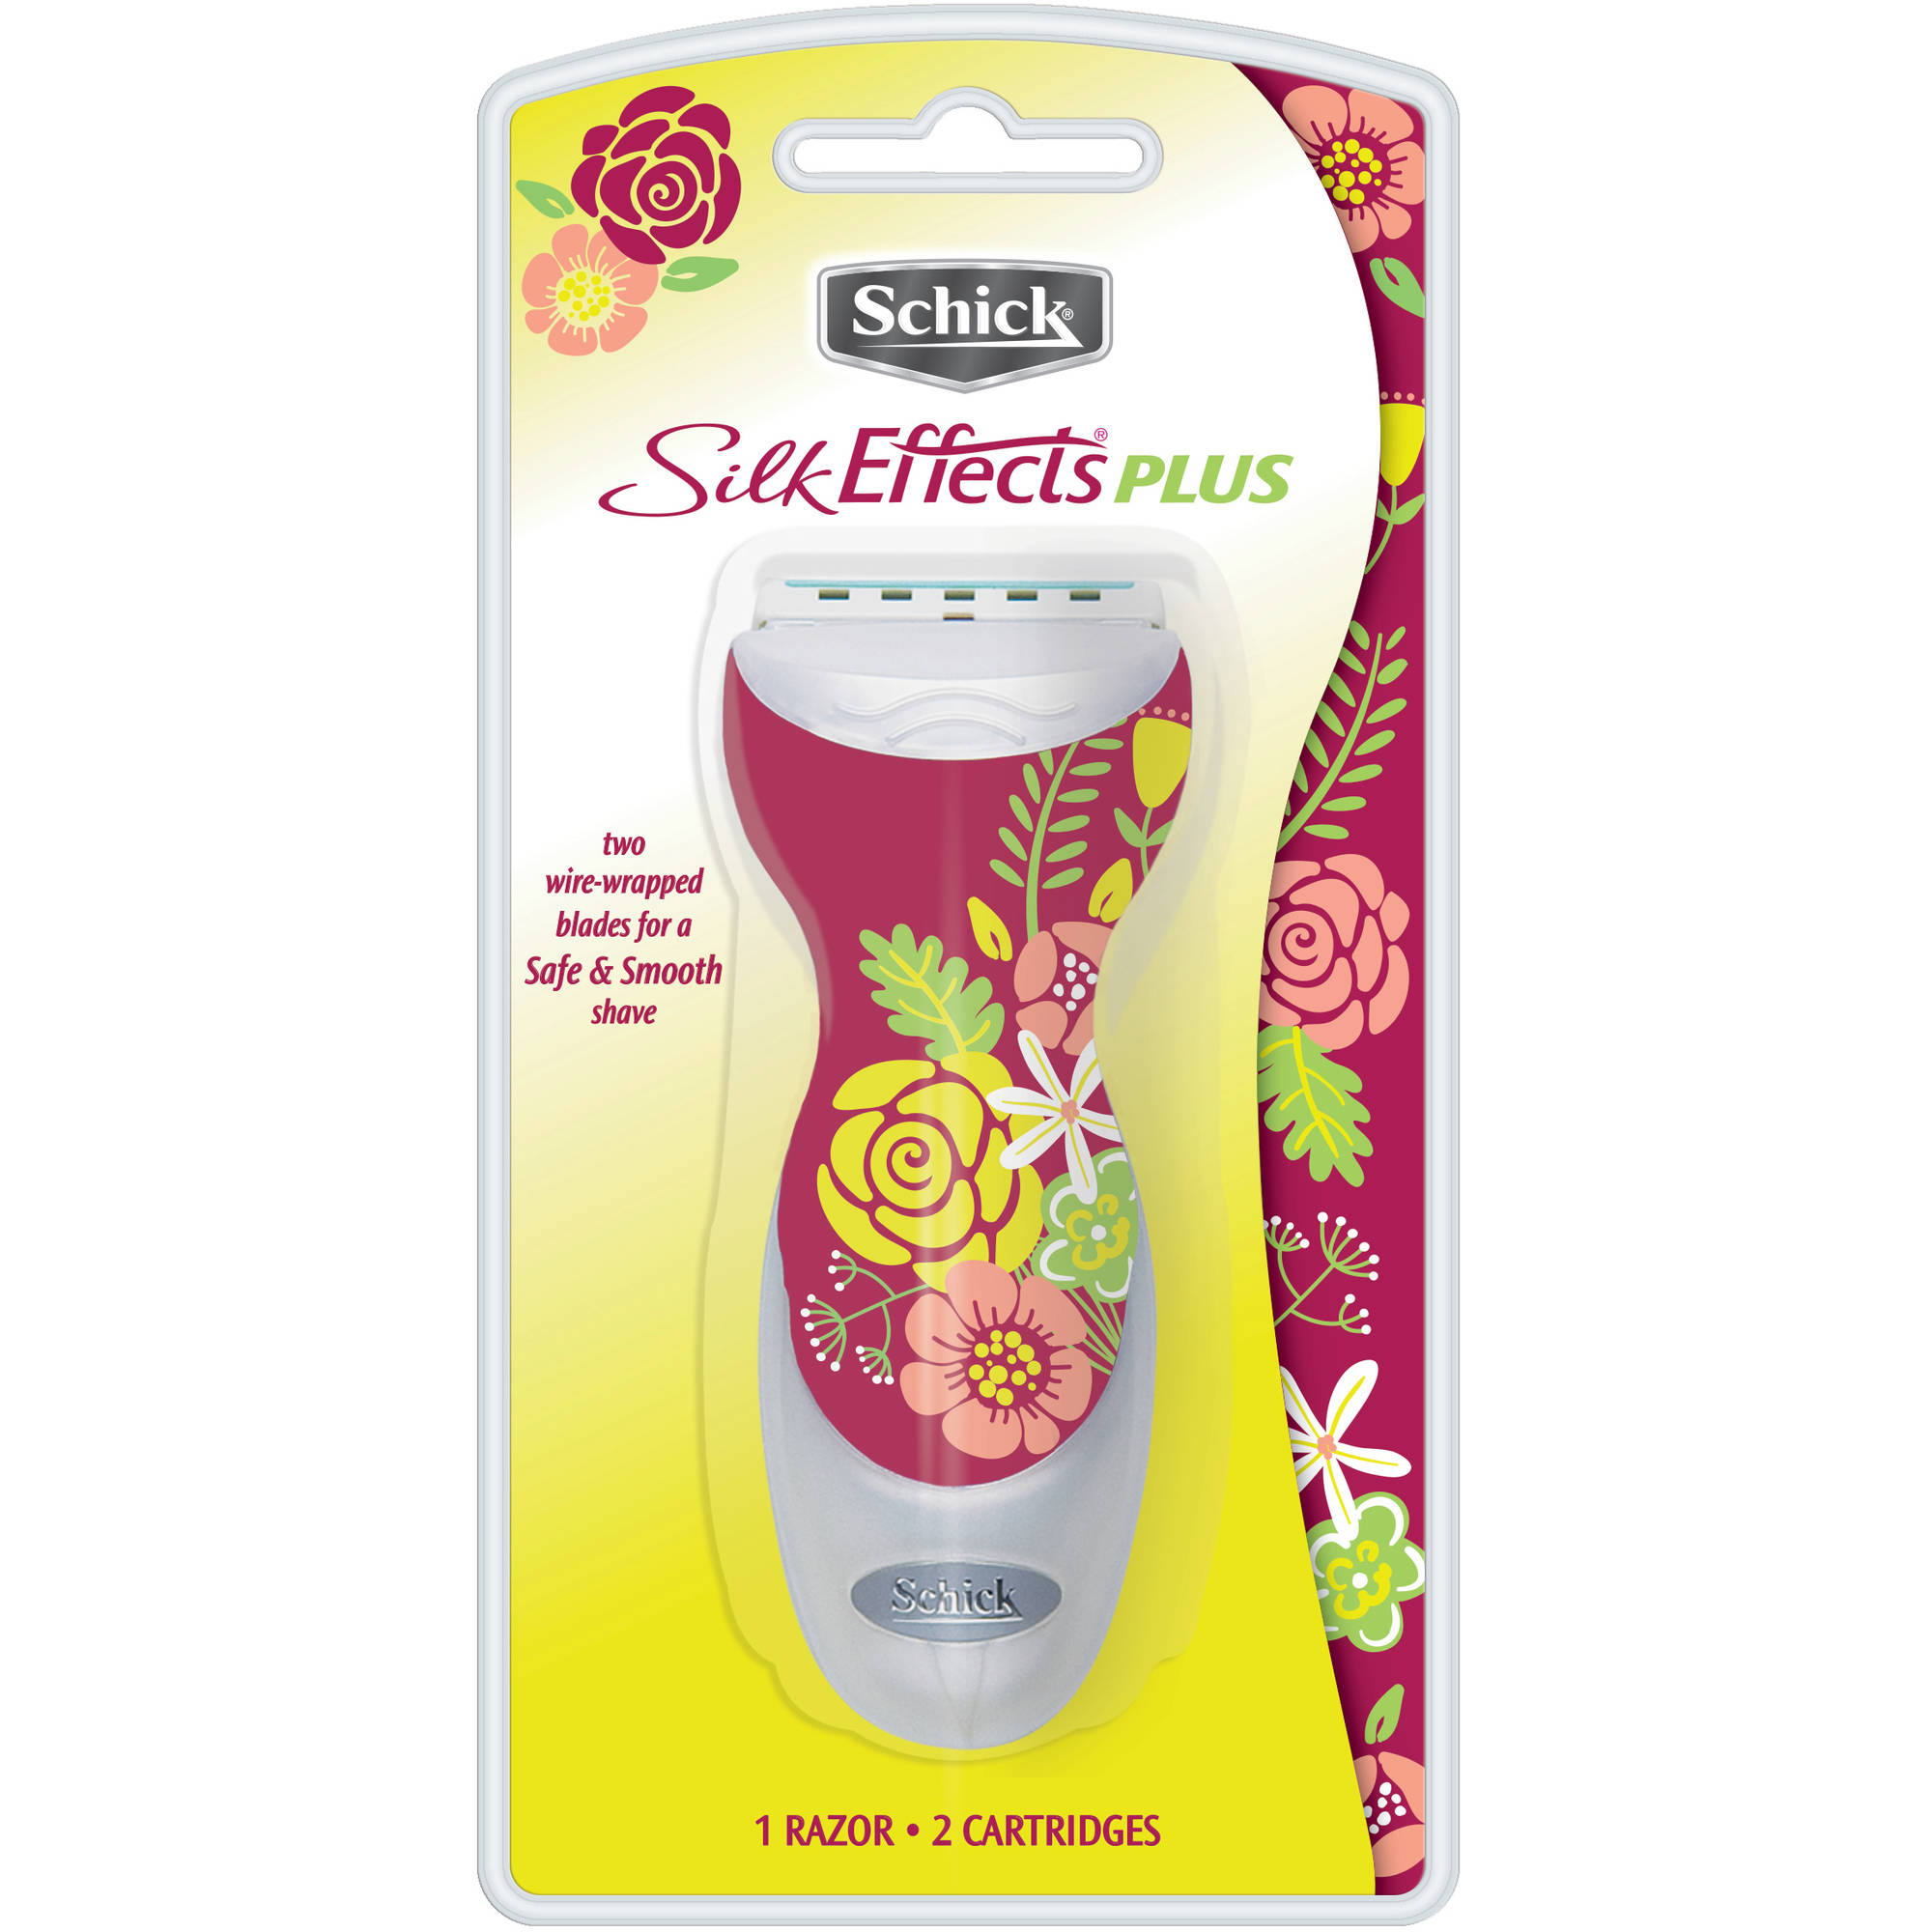 Schick Silk Effects Plus Women's Razor - 1 Razor Handle Plus 2 Refill Razor Blades